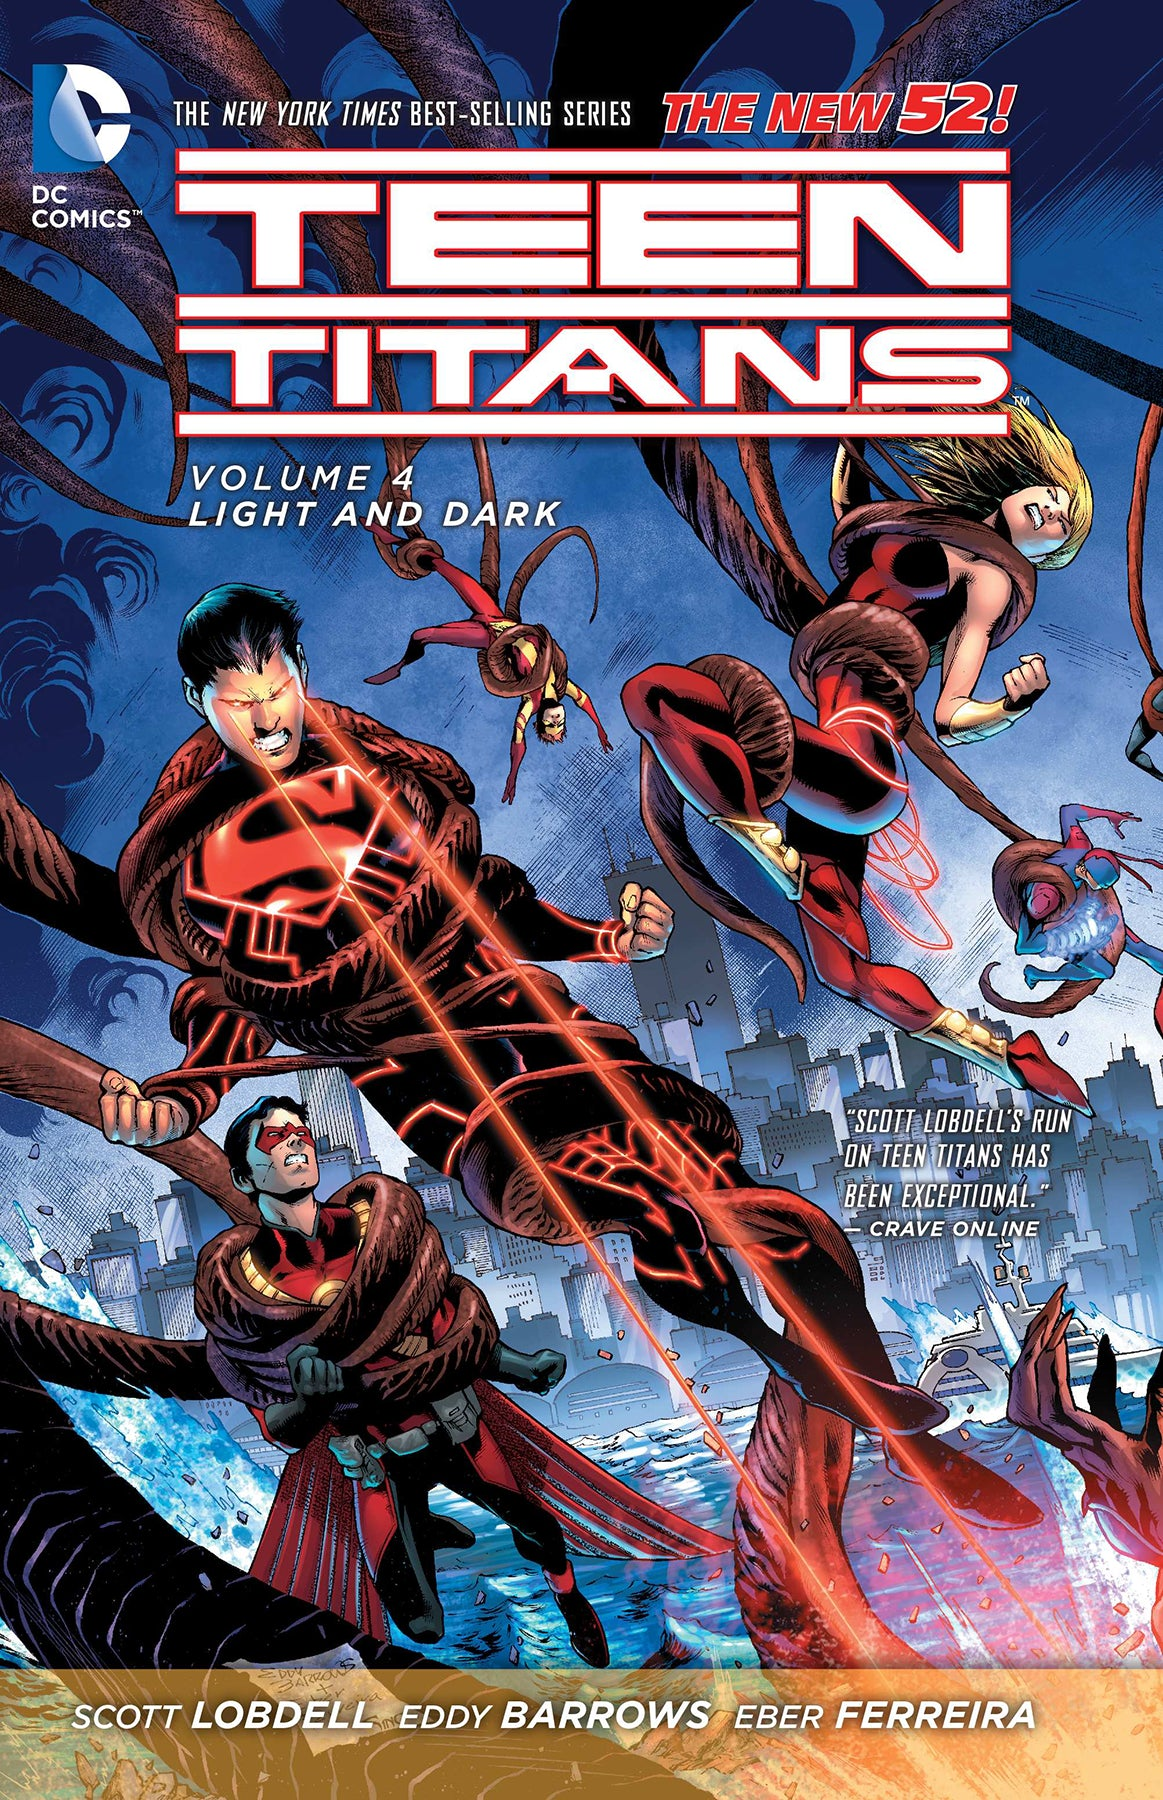 TEEN TITANS TP VOL 04 LIGHT AND DARK (N52) | Game Master's Emporium (The New GME)